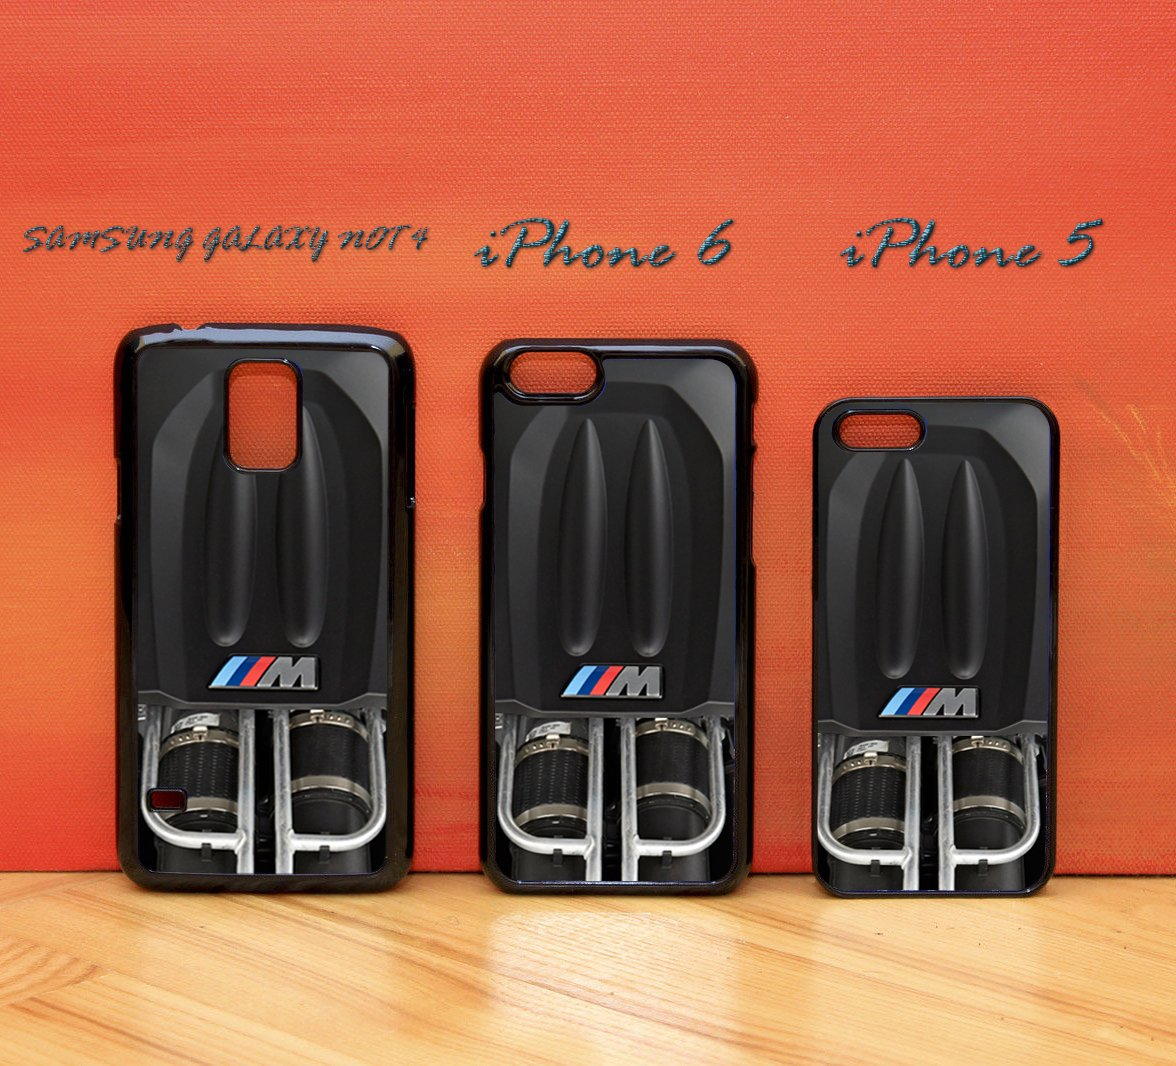 Engine BMW IIIM M6 iphone 6 case, iPhone 6 cover, iPhone 6 accsesories